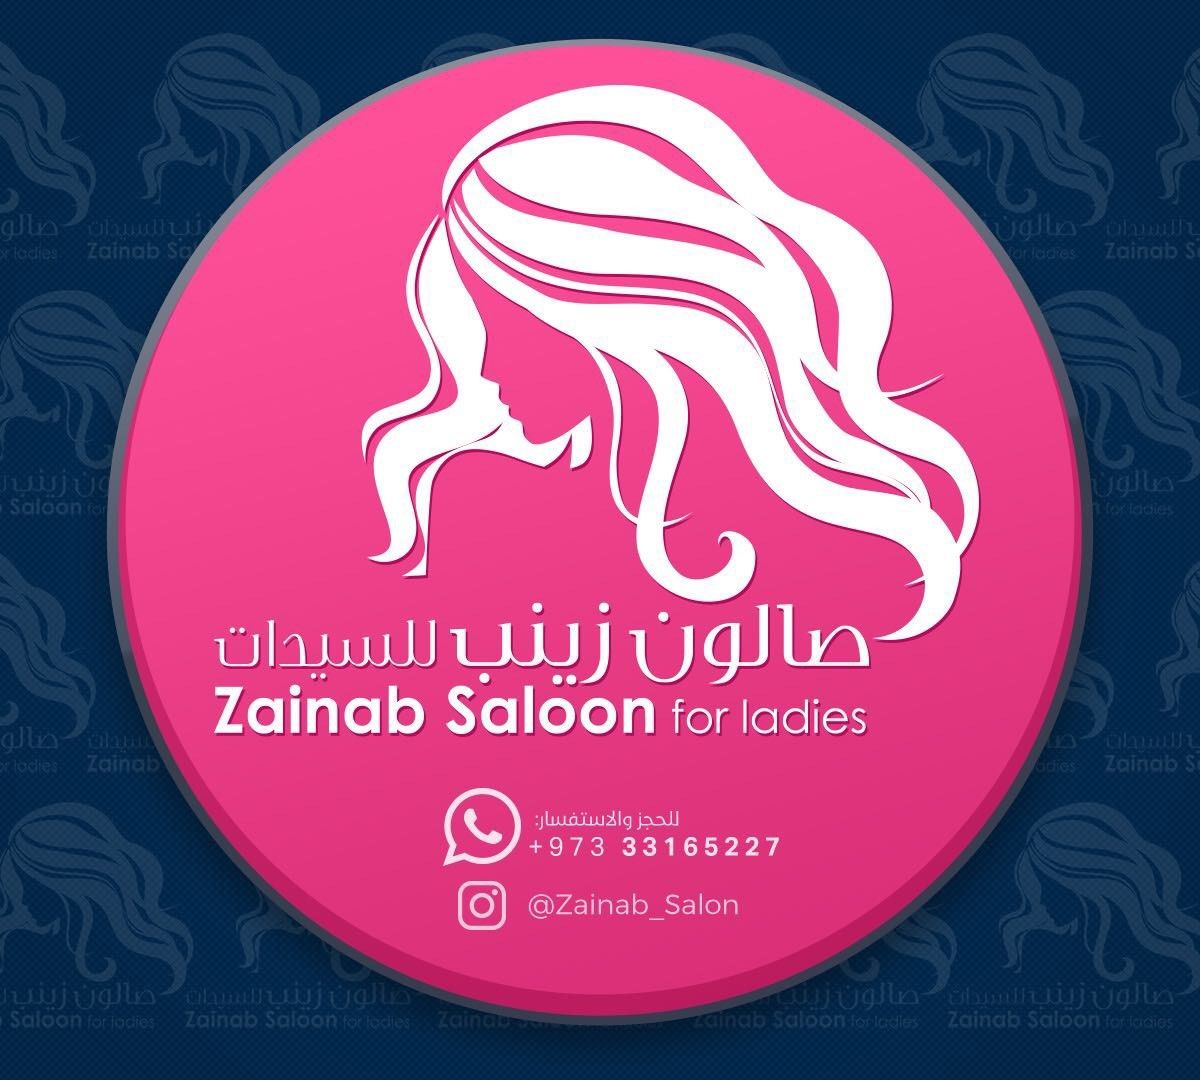 Zainab Saloon For Ladies